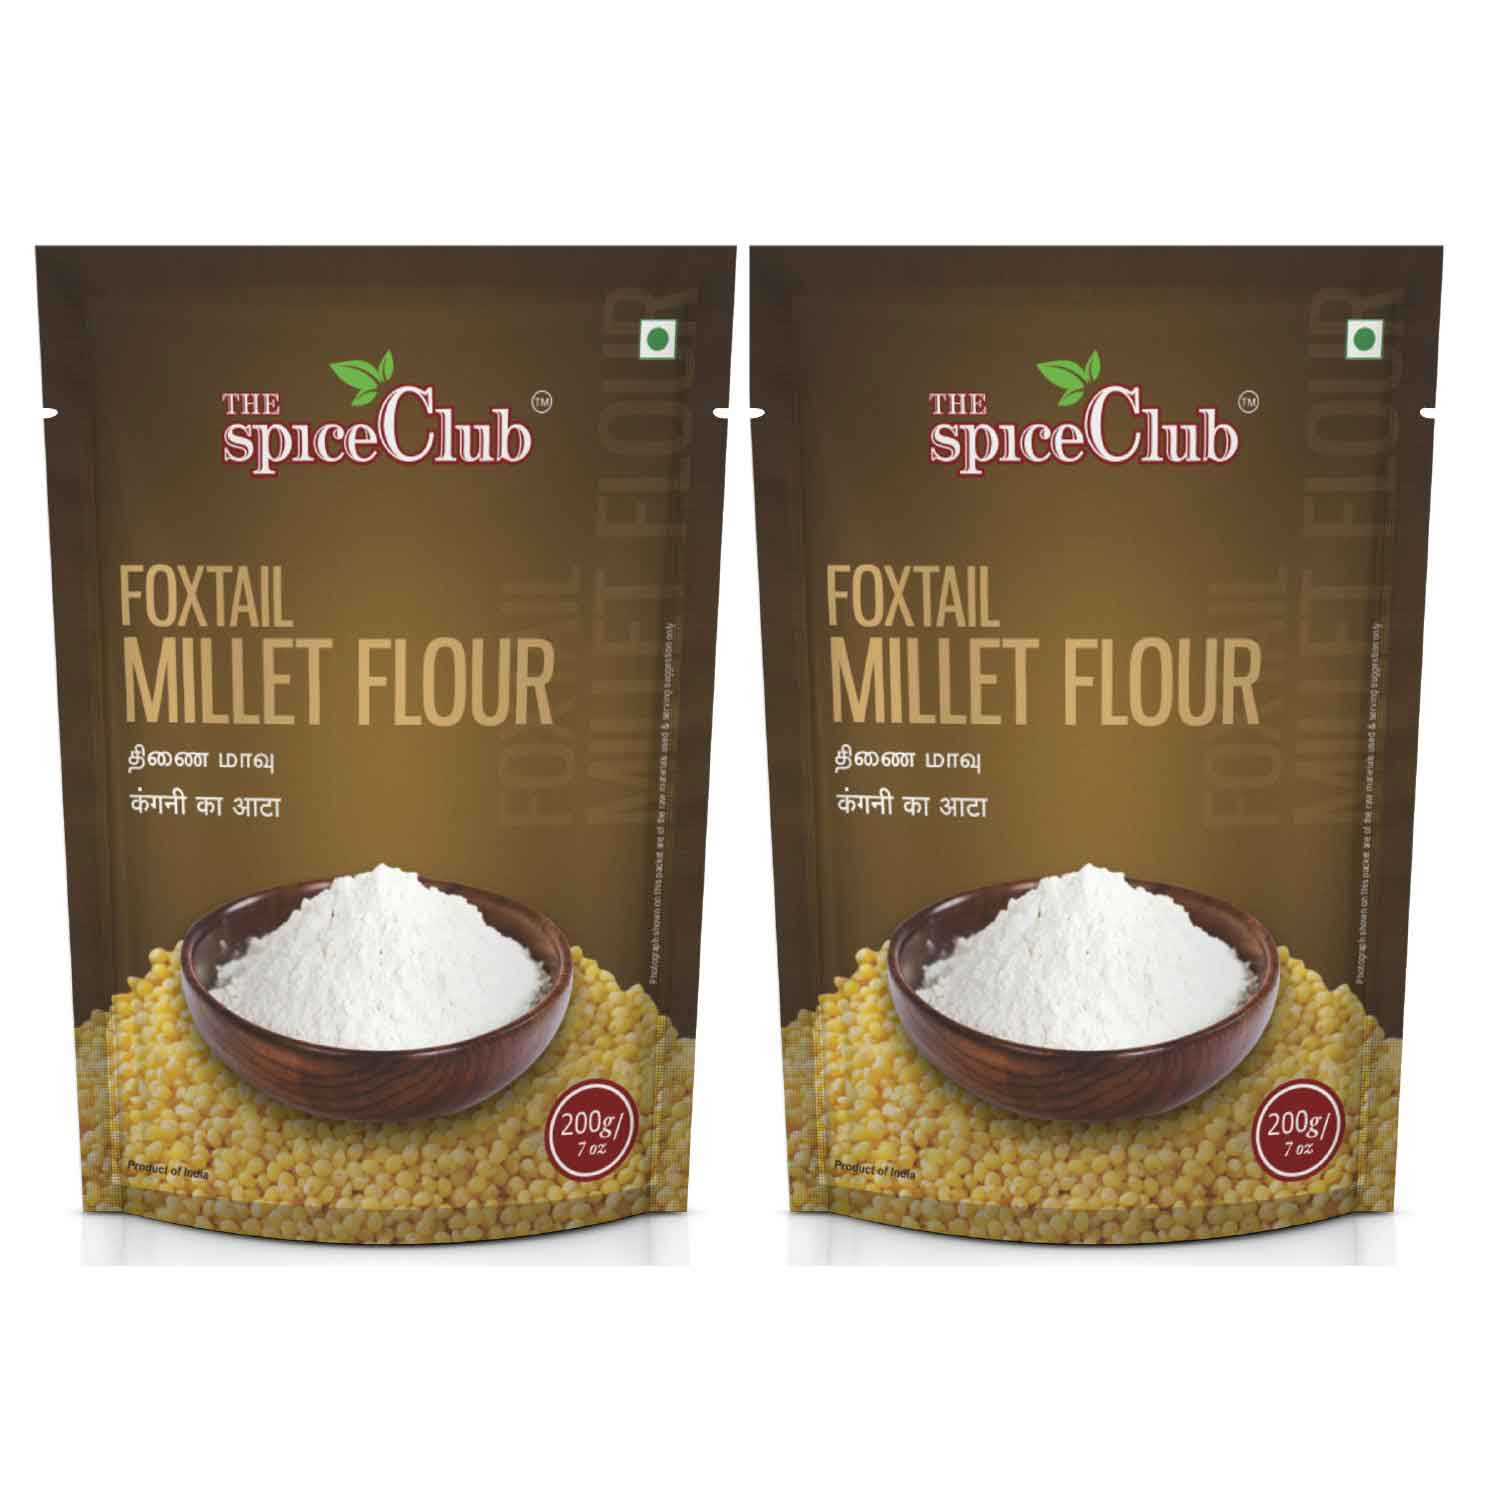 Foxtail Millet flour200g (Pack of 2)